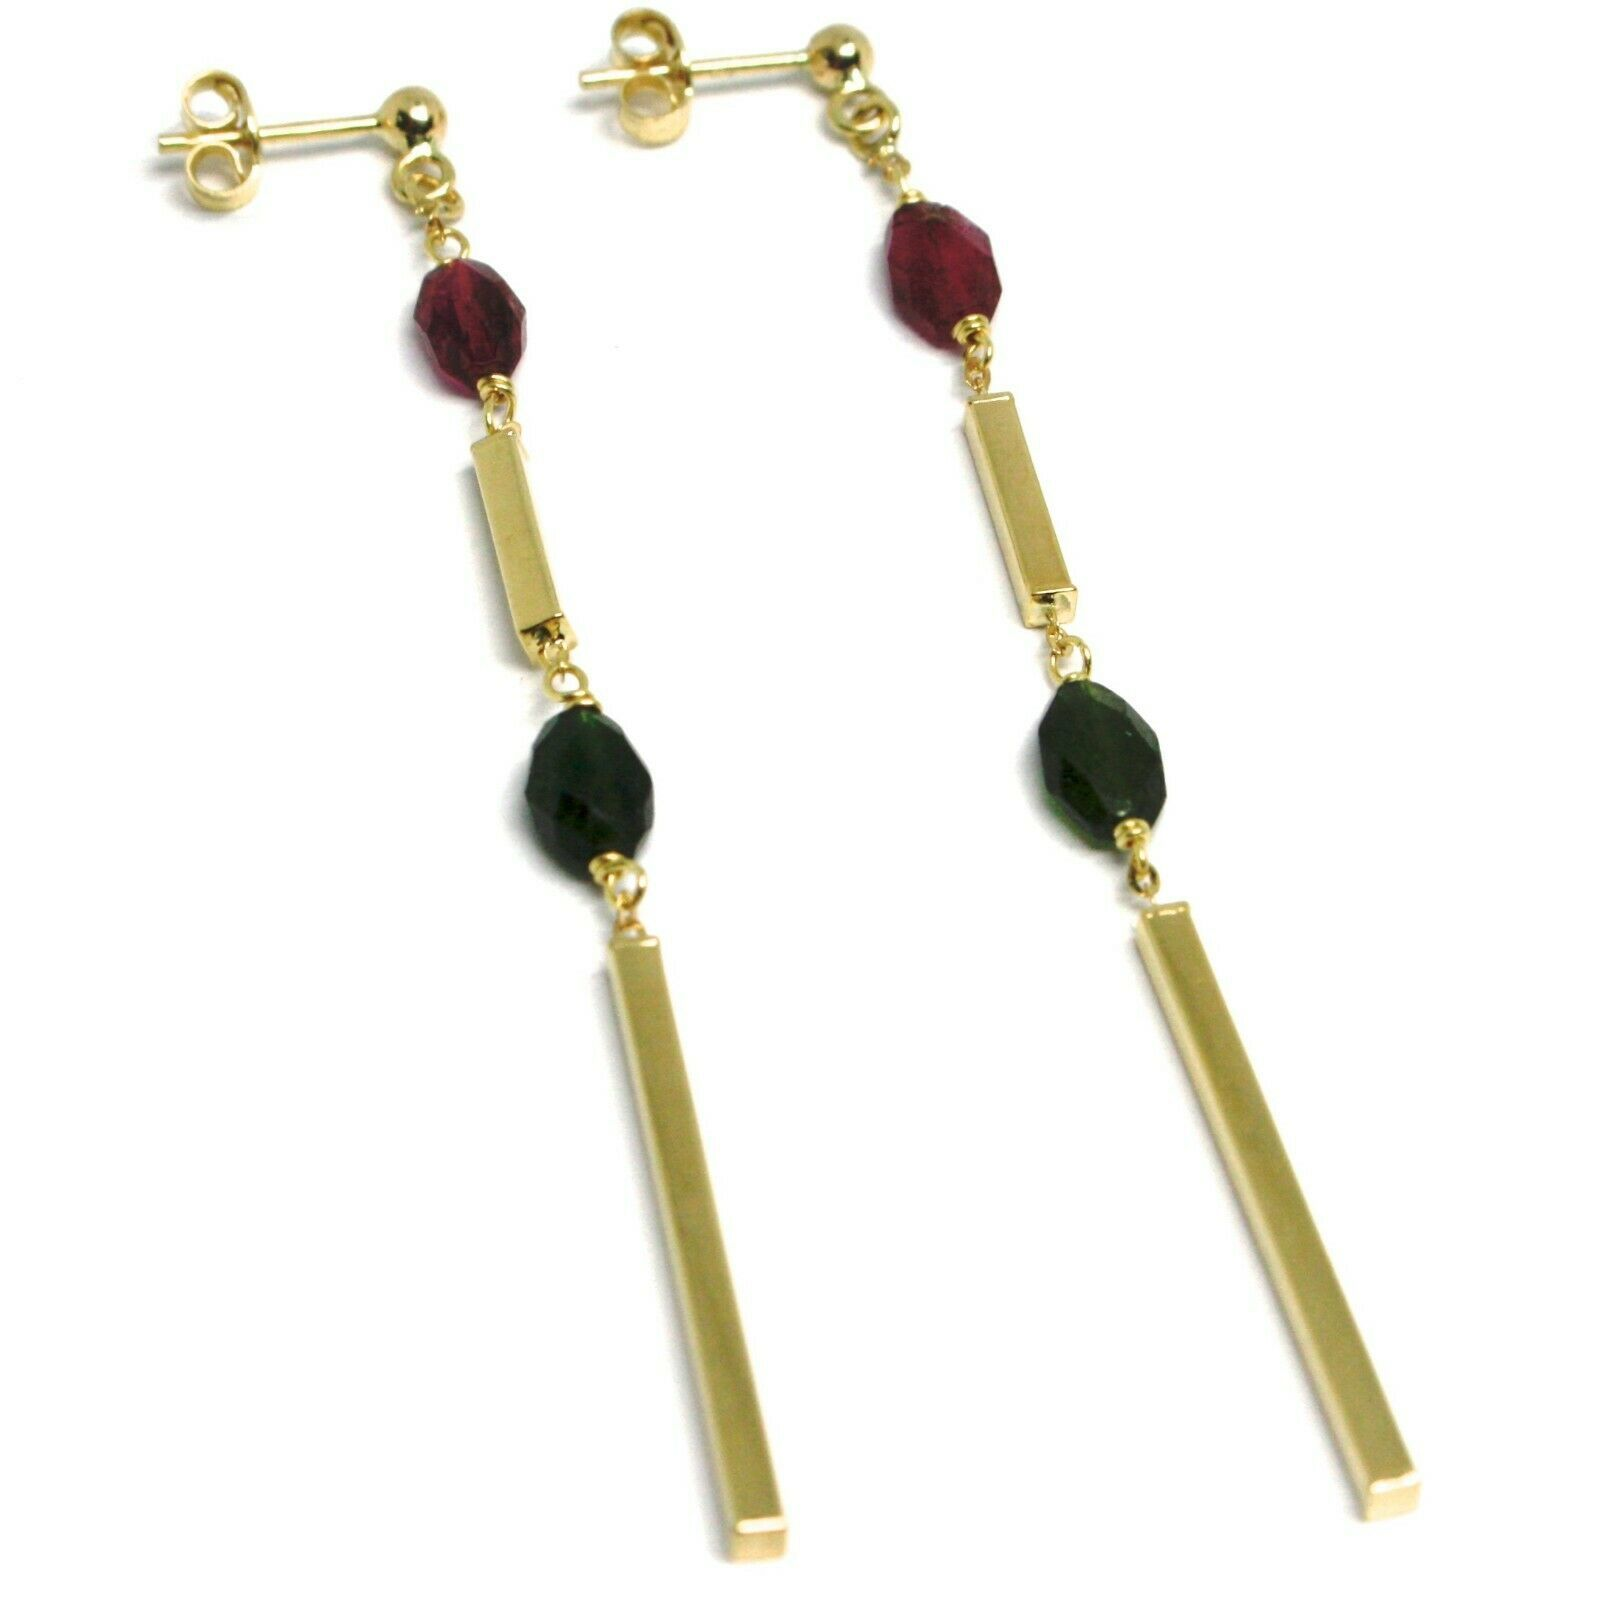 18K YELLOW GOLD PENDANT EARRINGS, FACETED OVAL PURPLE GREEN TOURMALINE, TUBES